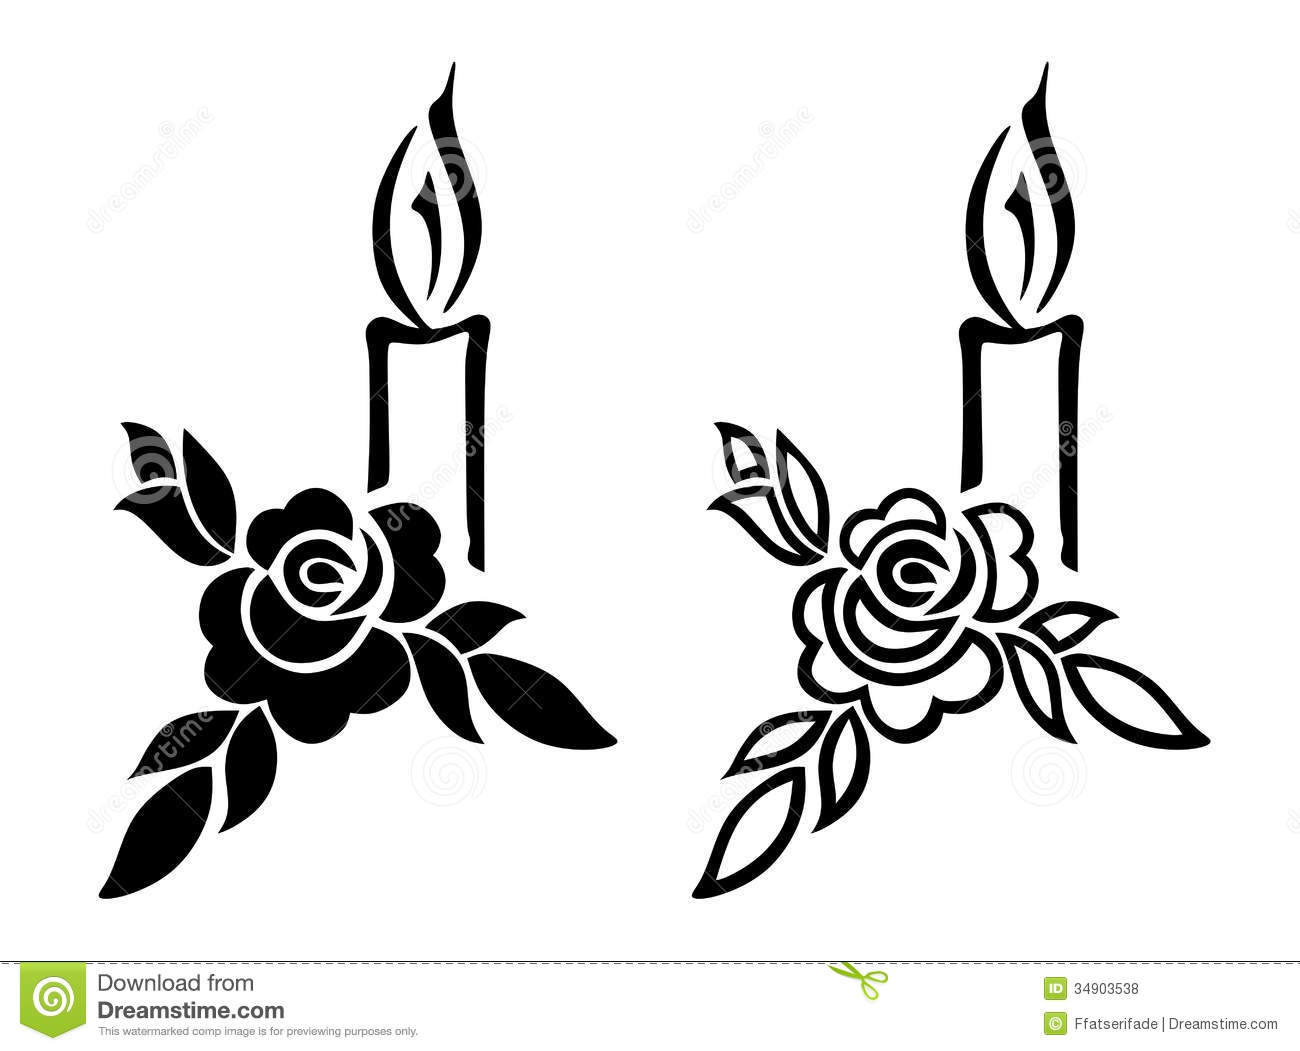 Decoration clipart funeral Program Clipart Free for Gallery